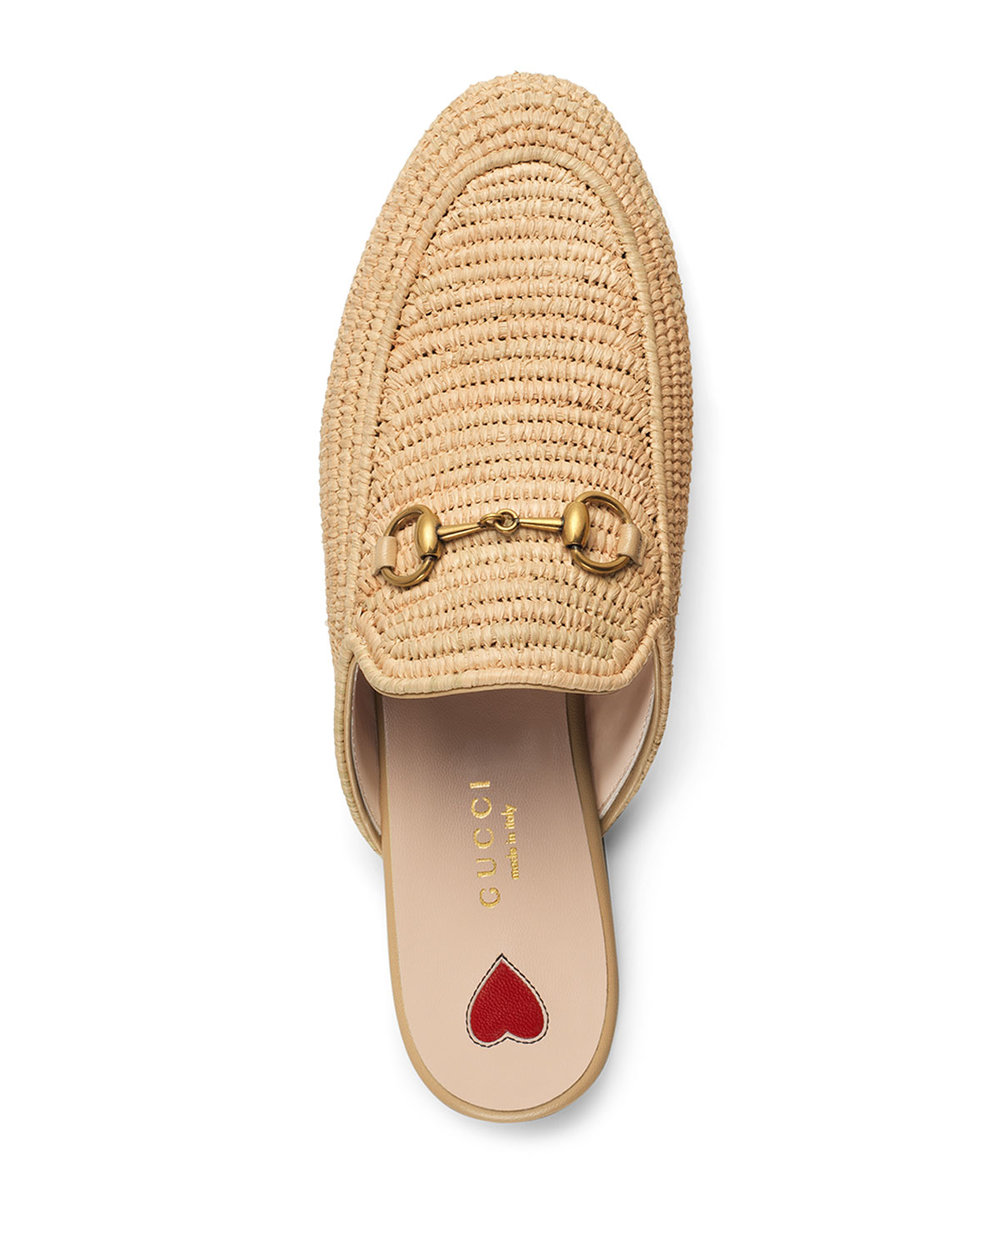 gucci-raffia-slide-caitlin-elizabeth-james-blog.jpg